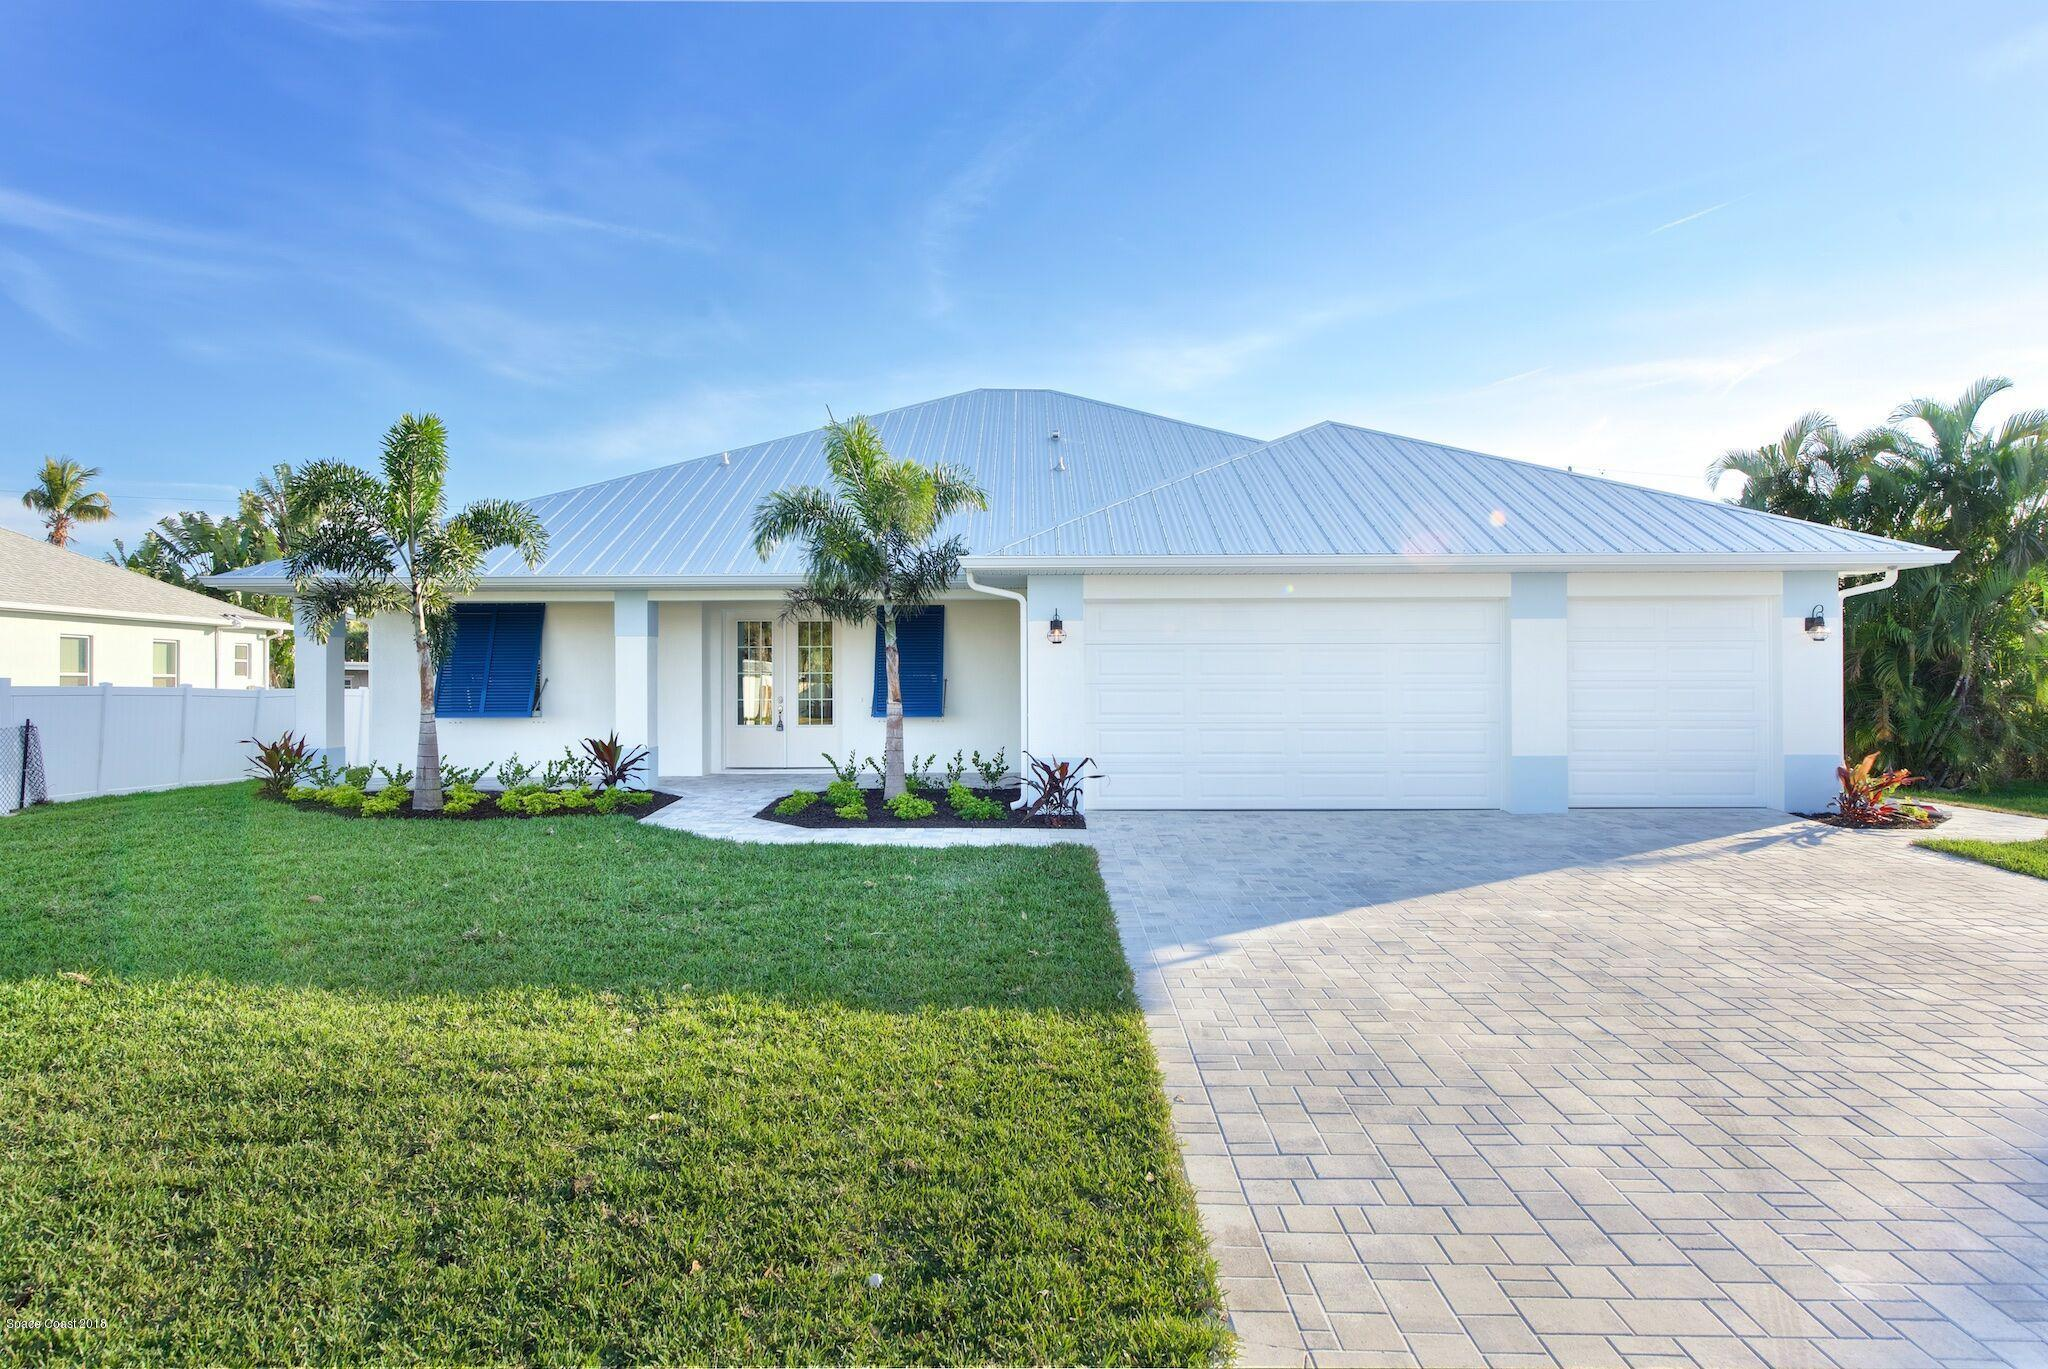 Property for Sale at 511 Hibiscus 511 Hibiscus Melbourne Beach, Florida 32951 United States